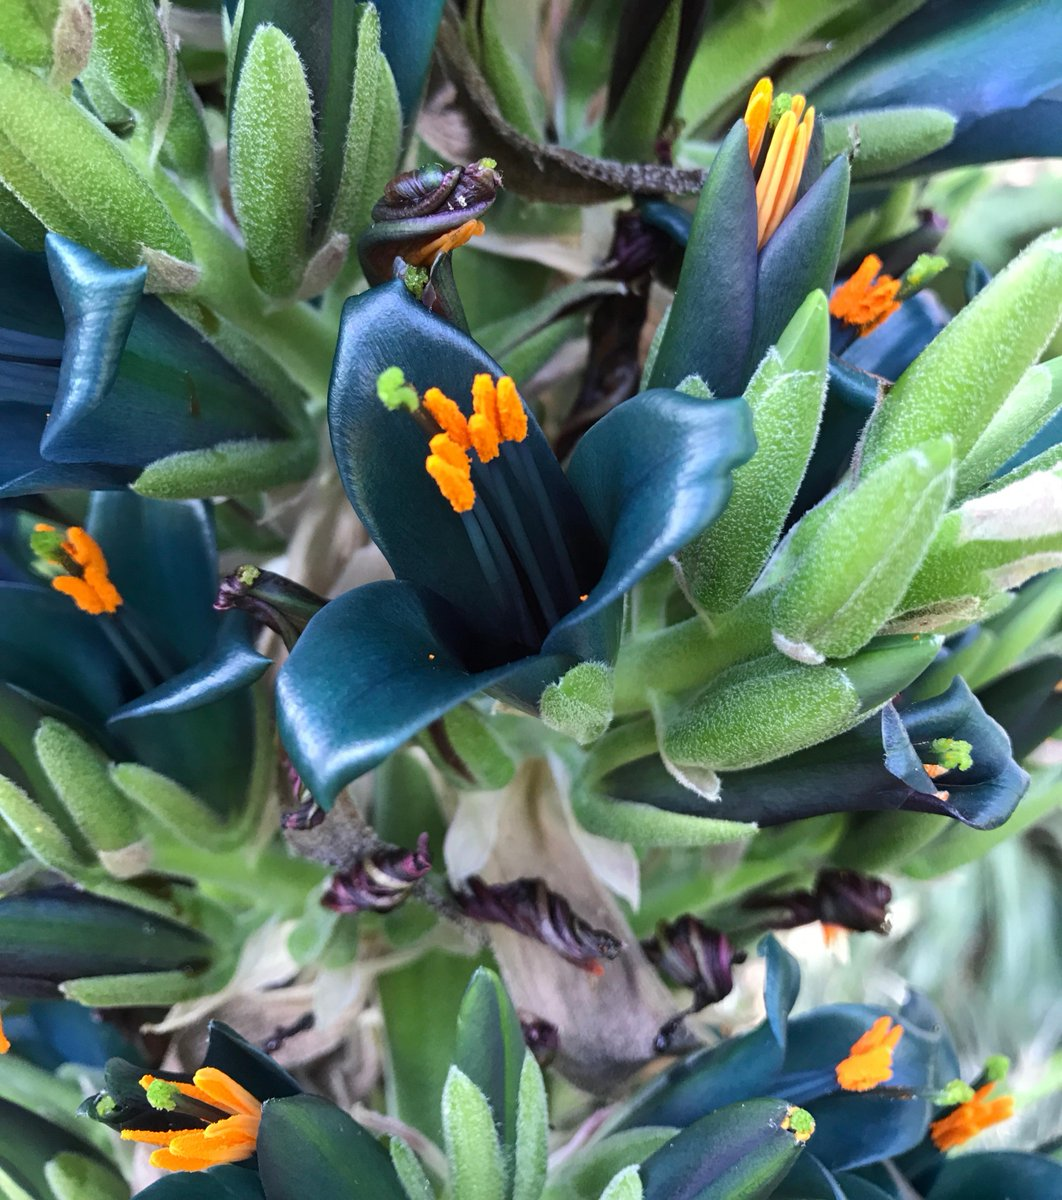 In the Garden this week: winter veg plot by trainee Olivia, plants to help cure Covid-19 and a stunning Puya alpestris, a bromeliad from Chile which is related to a pineapple. #botanicgarden #plants #gardening